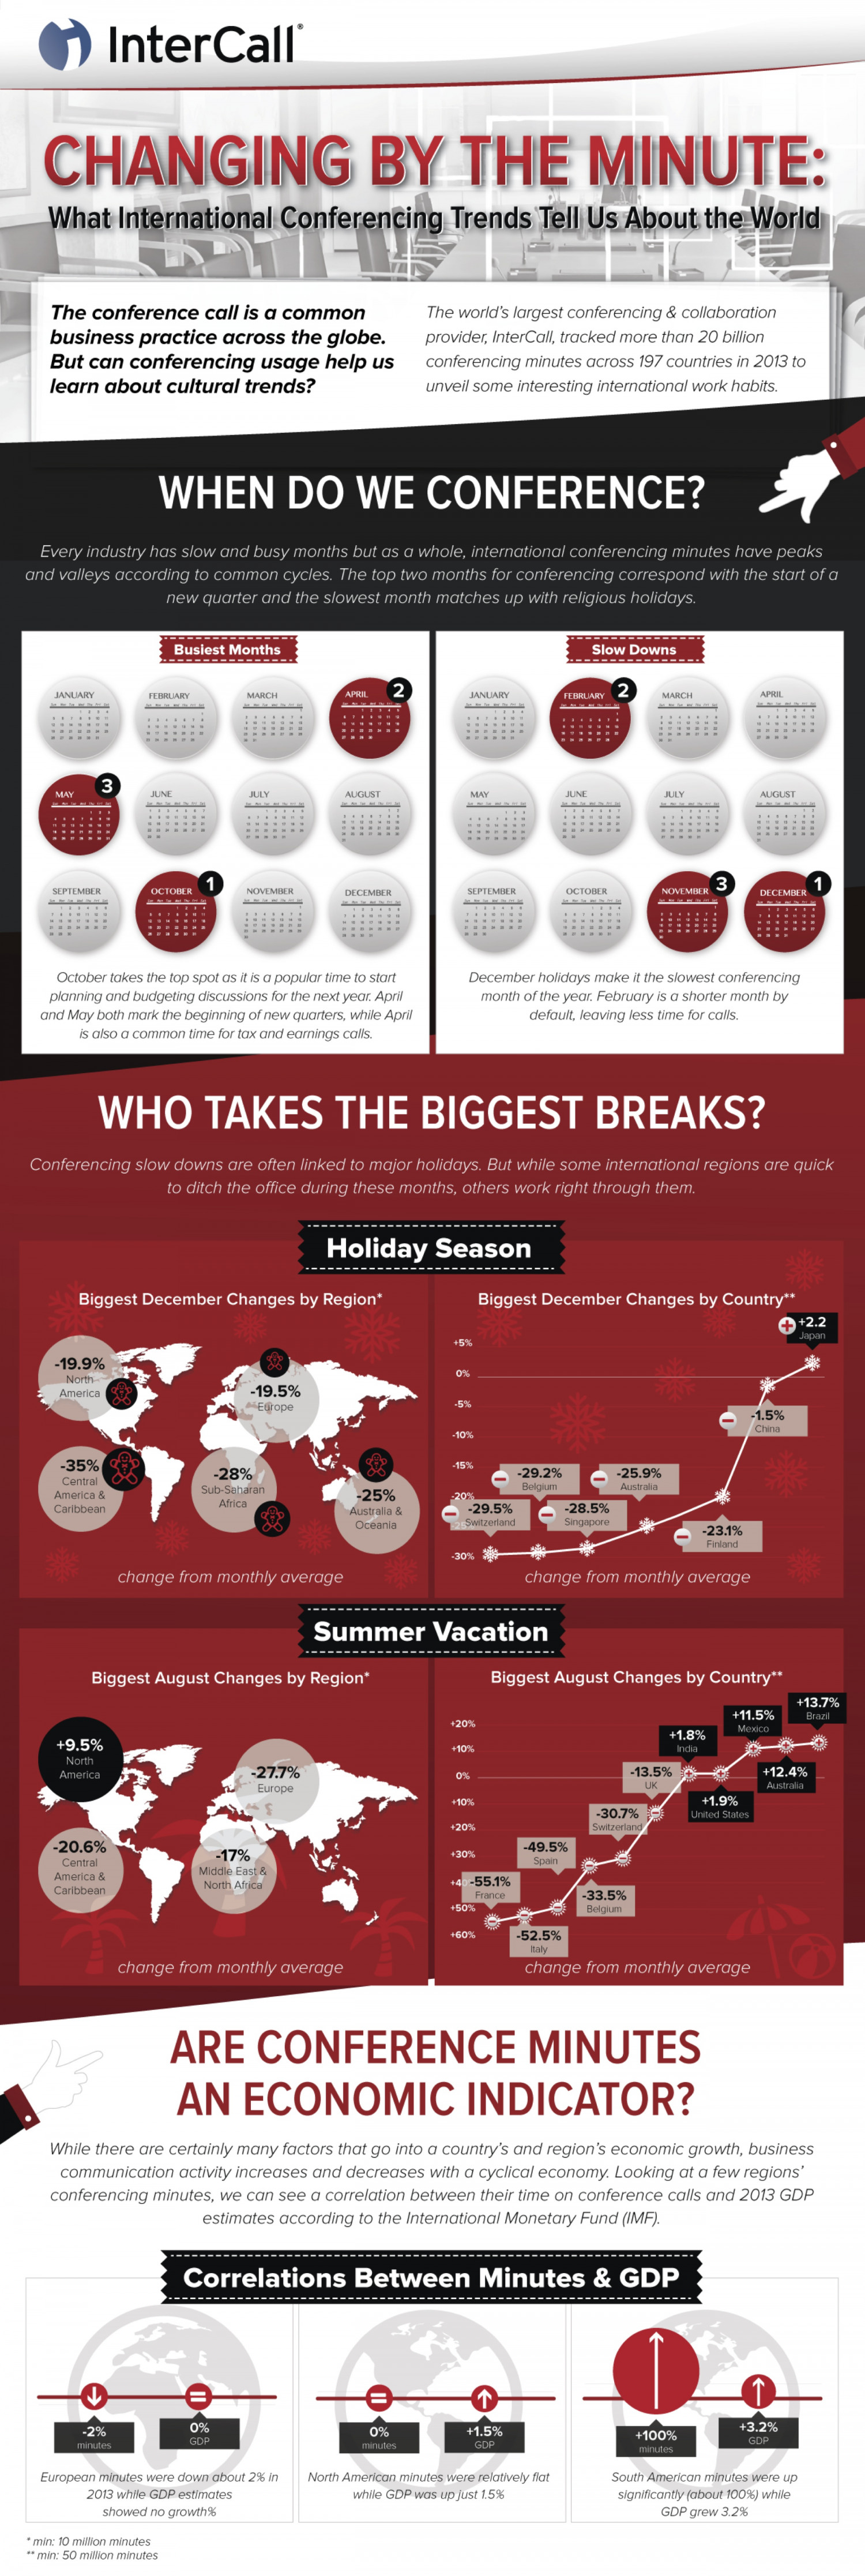 Changing by the Minute: What International Conferencing Trends Tell us About the World Infographic